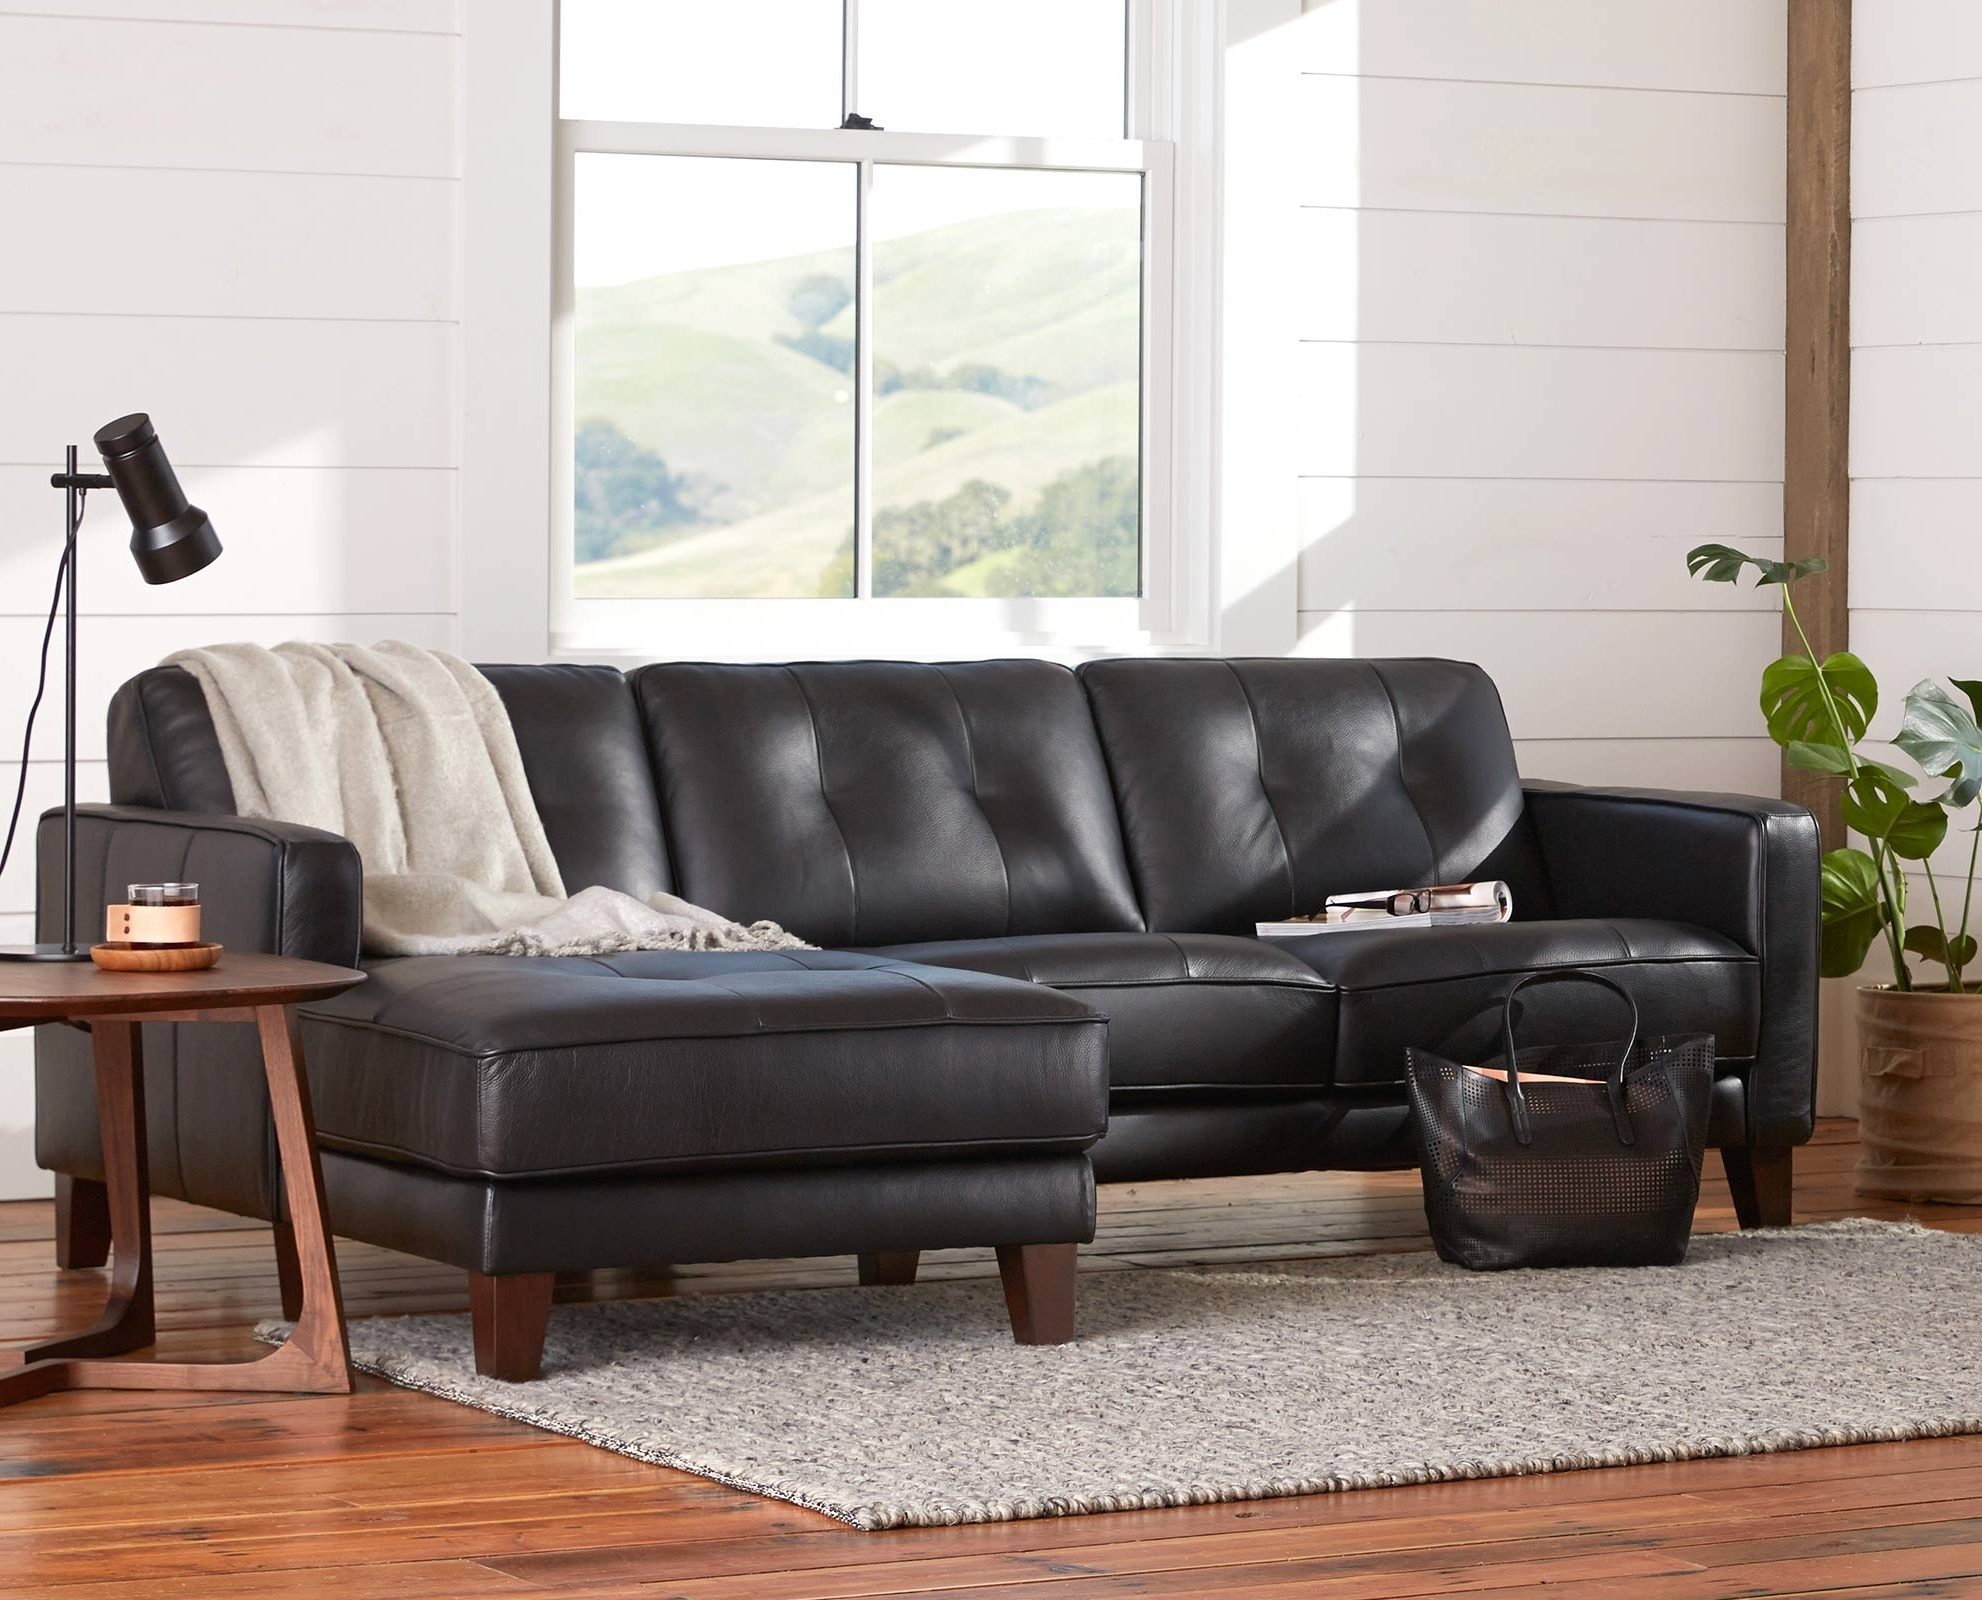 Furniture: Wonderful Selection Of Qualitydaniafurniture Inside Famous Dania Sectional Sofas (View 10 of 20)